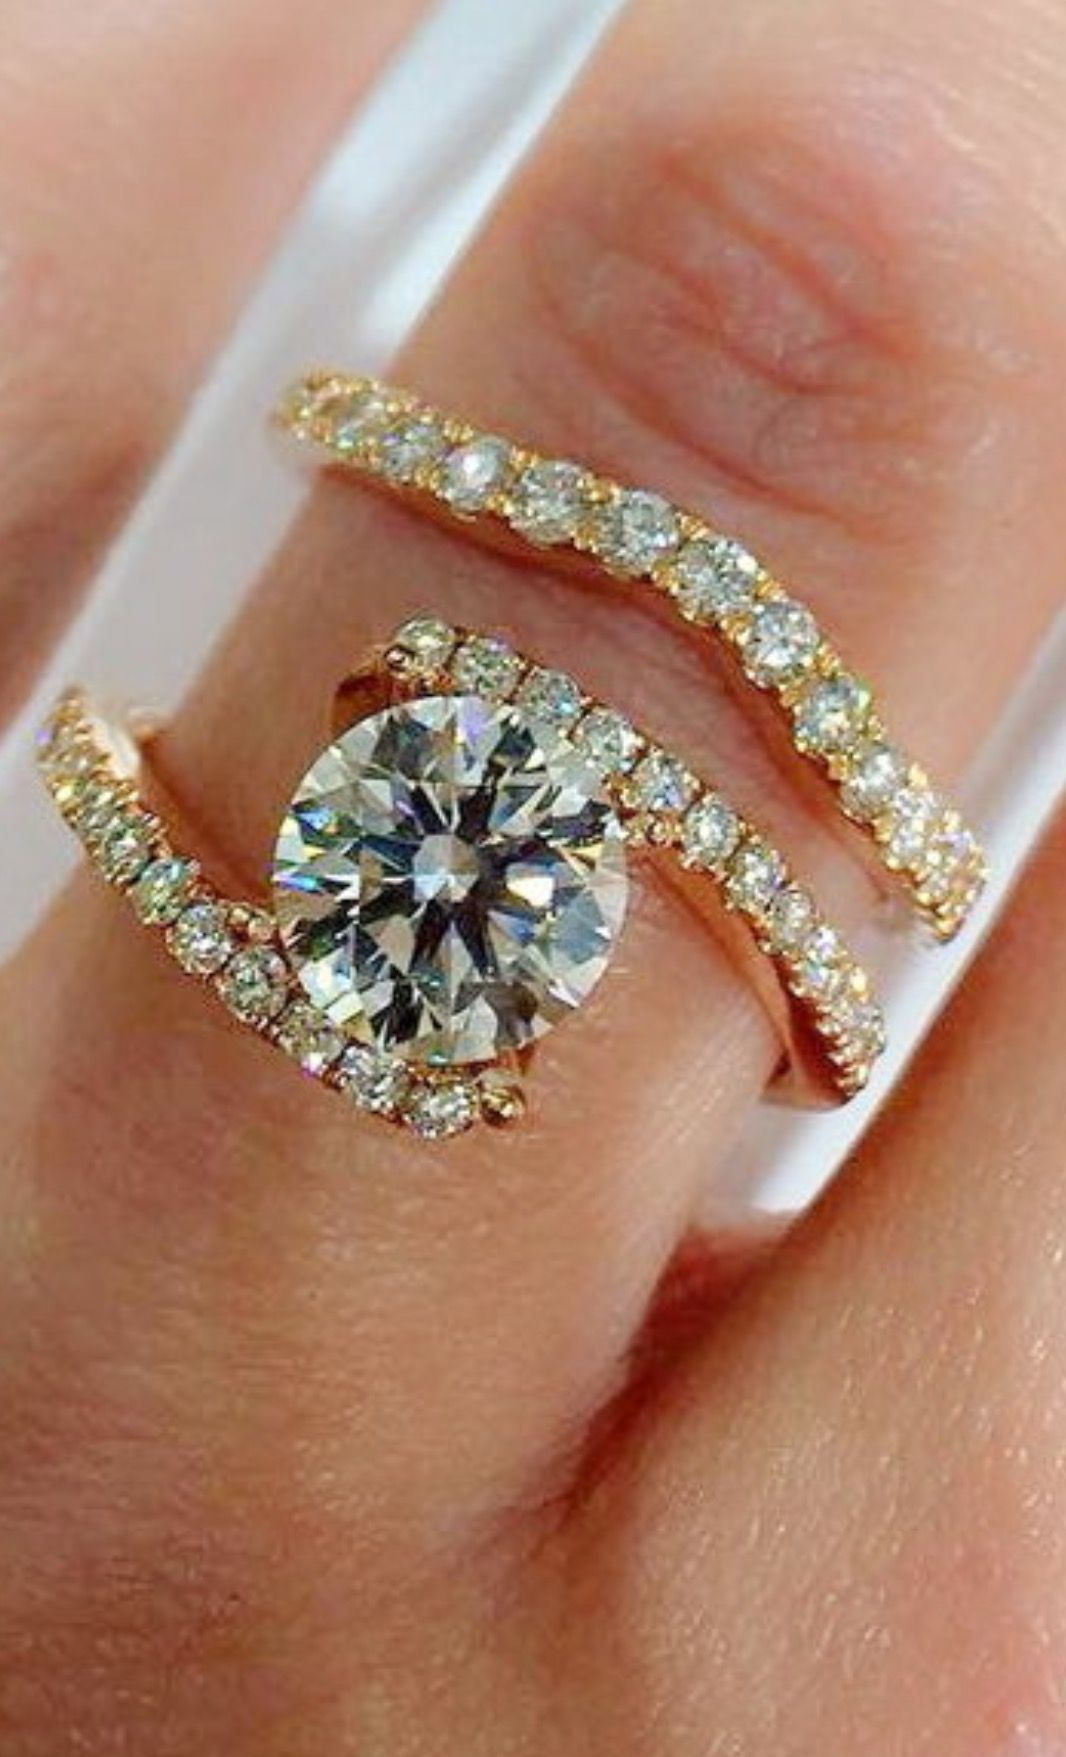 maven rings hunt media gem is cut gemtalkblog tips thediamondsgirlxgemhunt social flawless the gives radiant engagement diamonds diamond us girl icerock pro